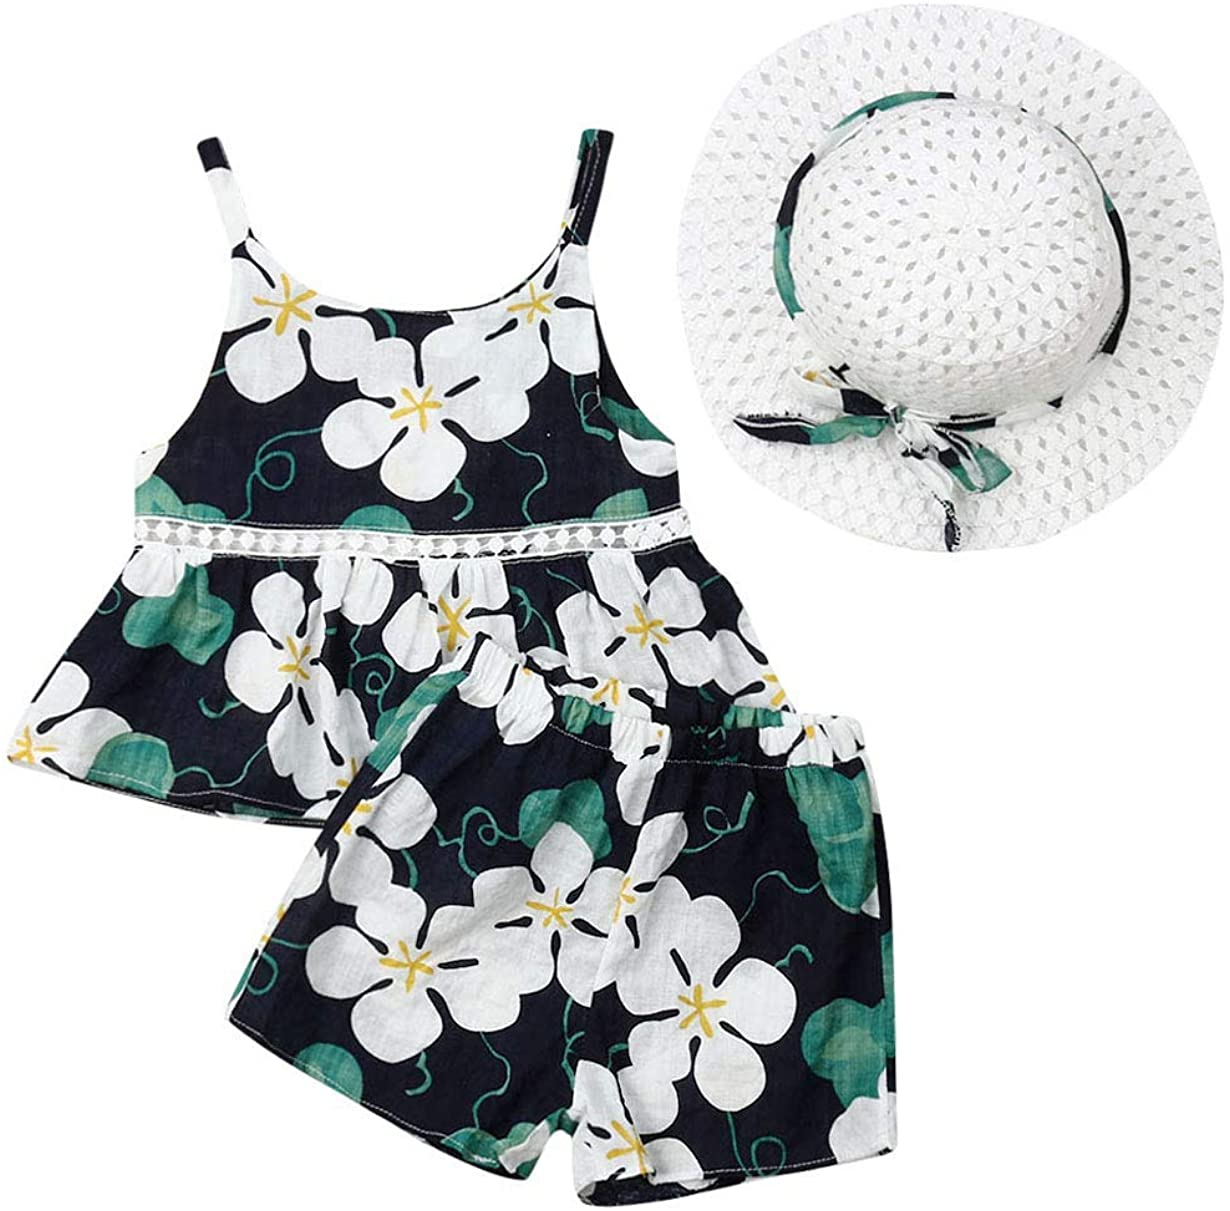 Baby Toddler Girls Clothes 2T 3T 4T 5T 6T Summer Outfits Halter Top & Short Sets Floral Flamingo Print